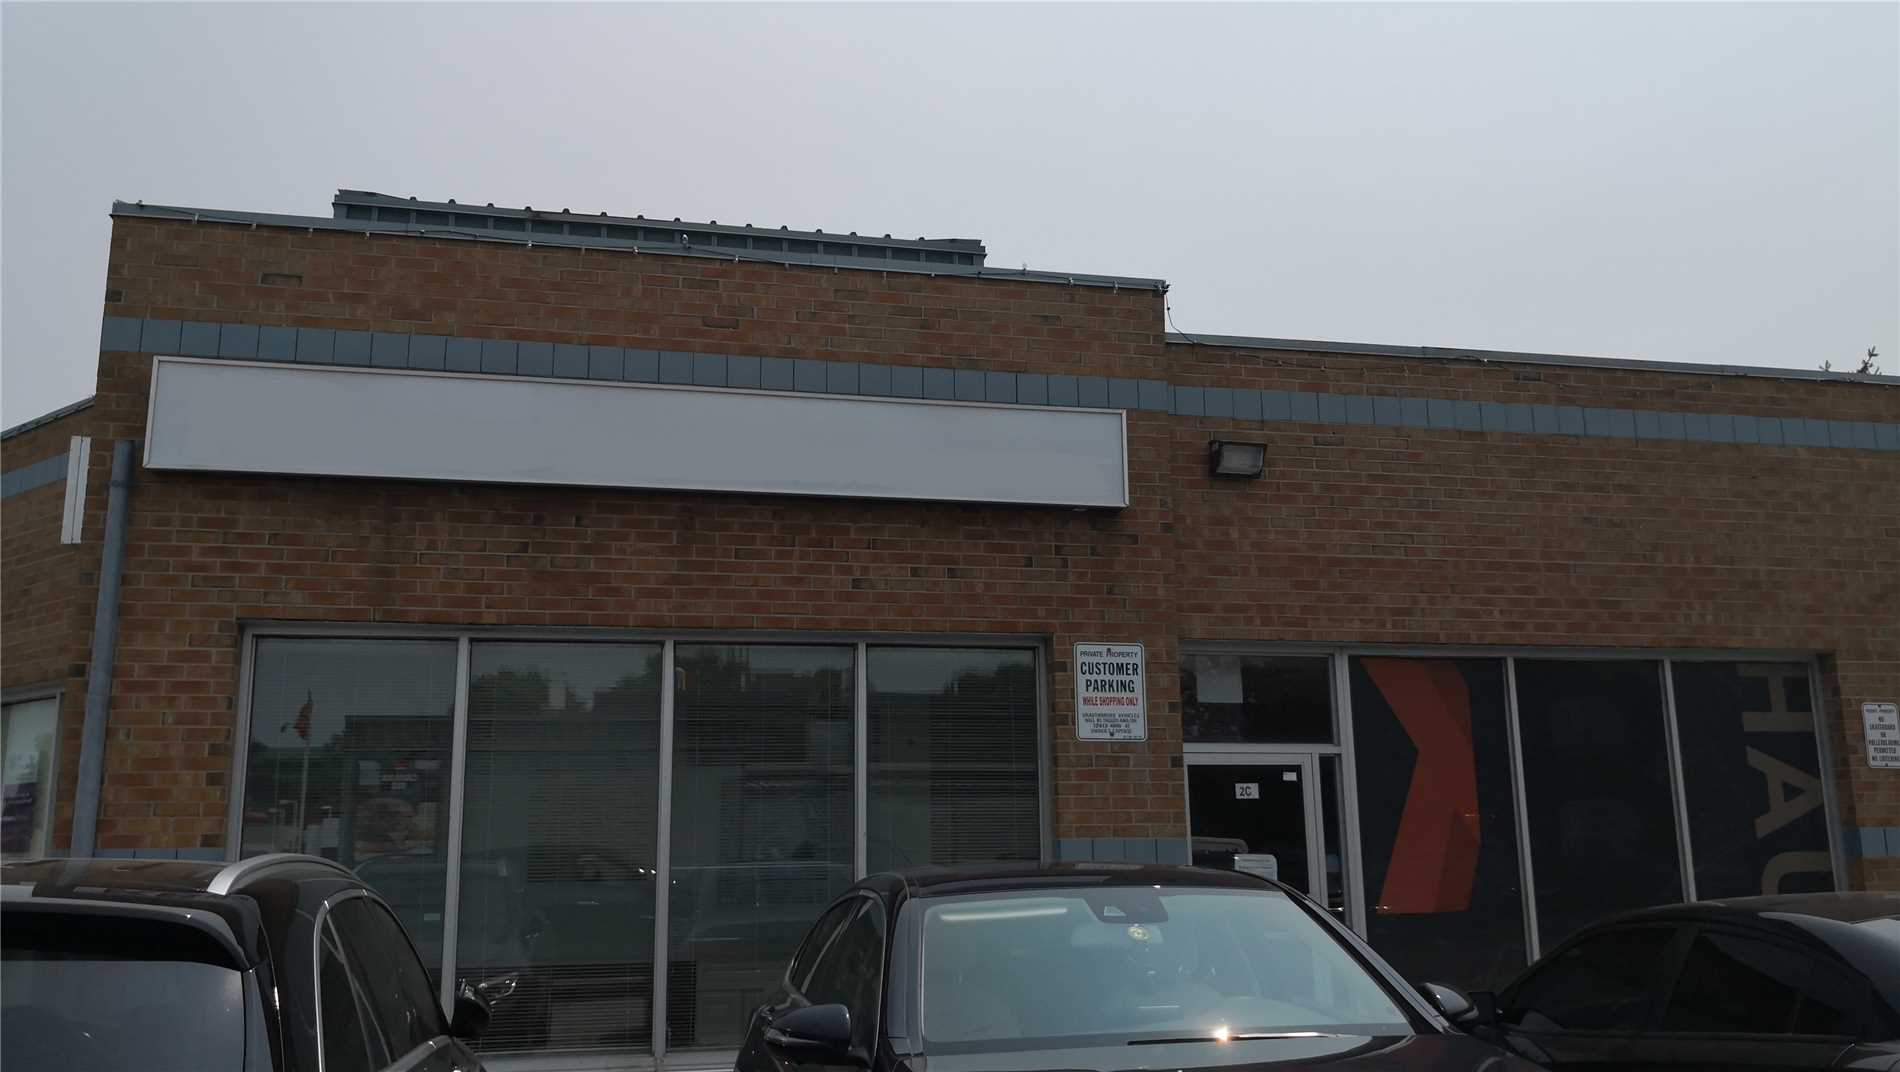 Bright Corner Retail/Office Unit In A High Traffic Plaza, Beside Macdonalds And Opposite To Smart Centre Walmart. Well Mixed Of Business In The Property With Chinese, Korean And Malaysian Restaurants, Dentists, Dry Cleaner, Hair Salon In Bayview Hill Community. Steps To Public Transit, Close To Hwy 404/407.